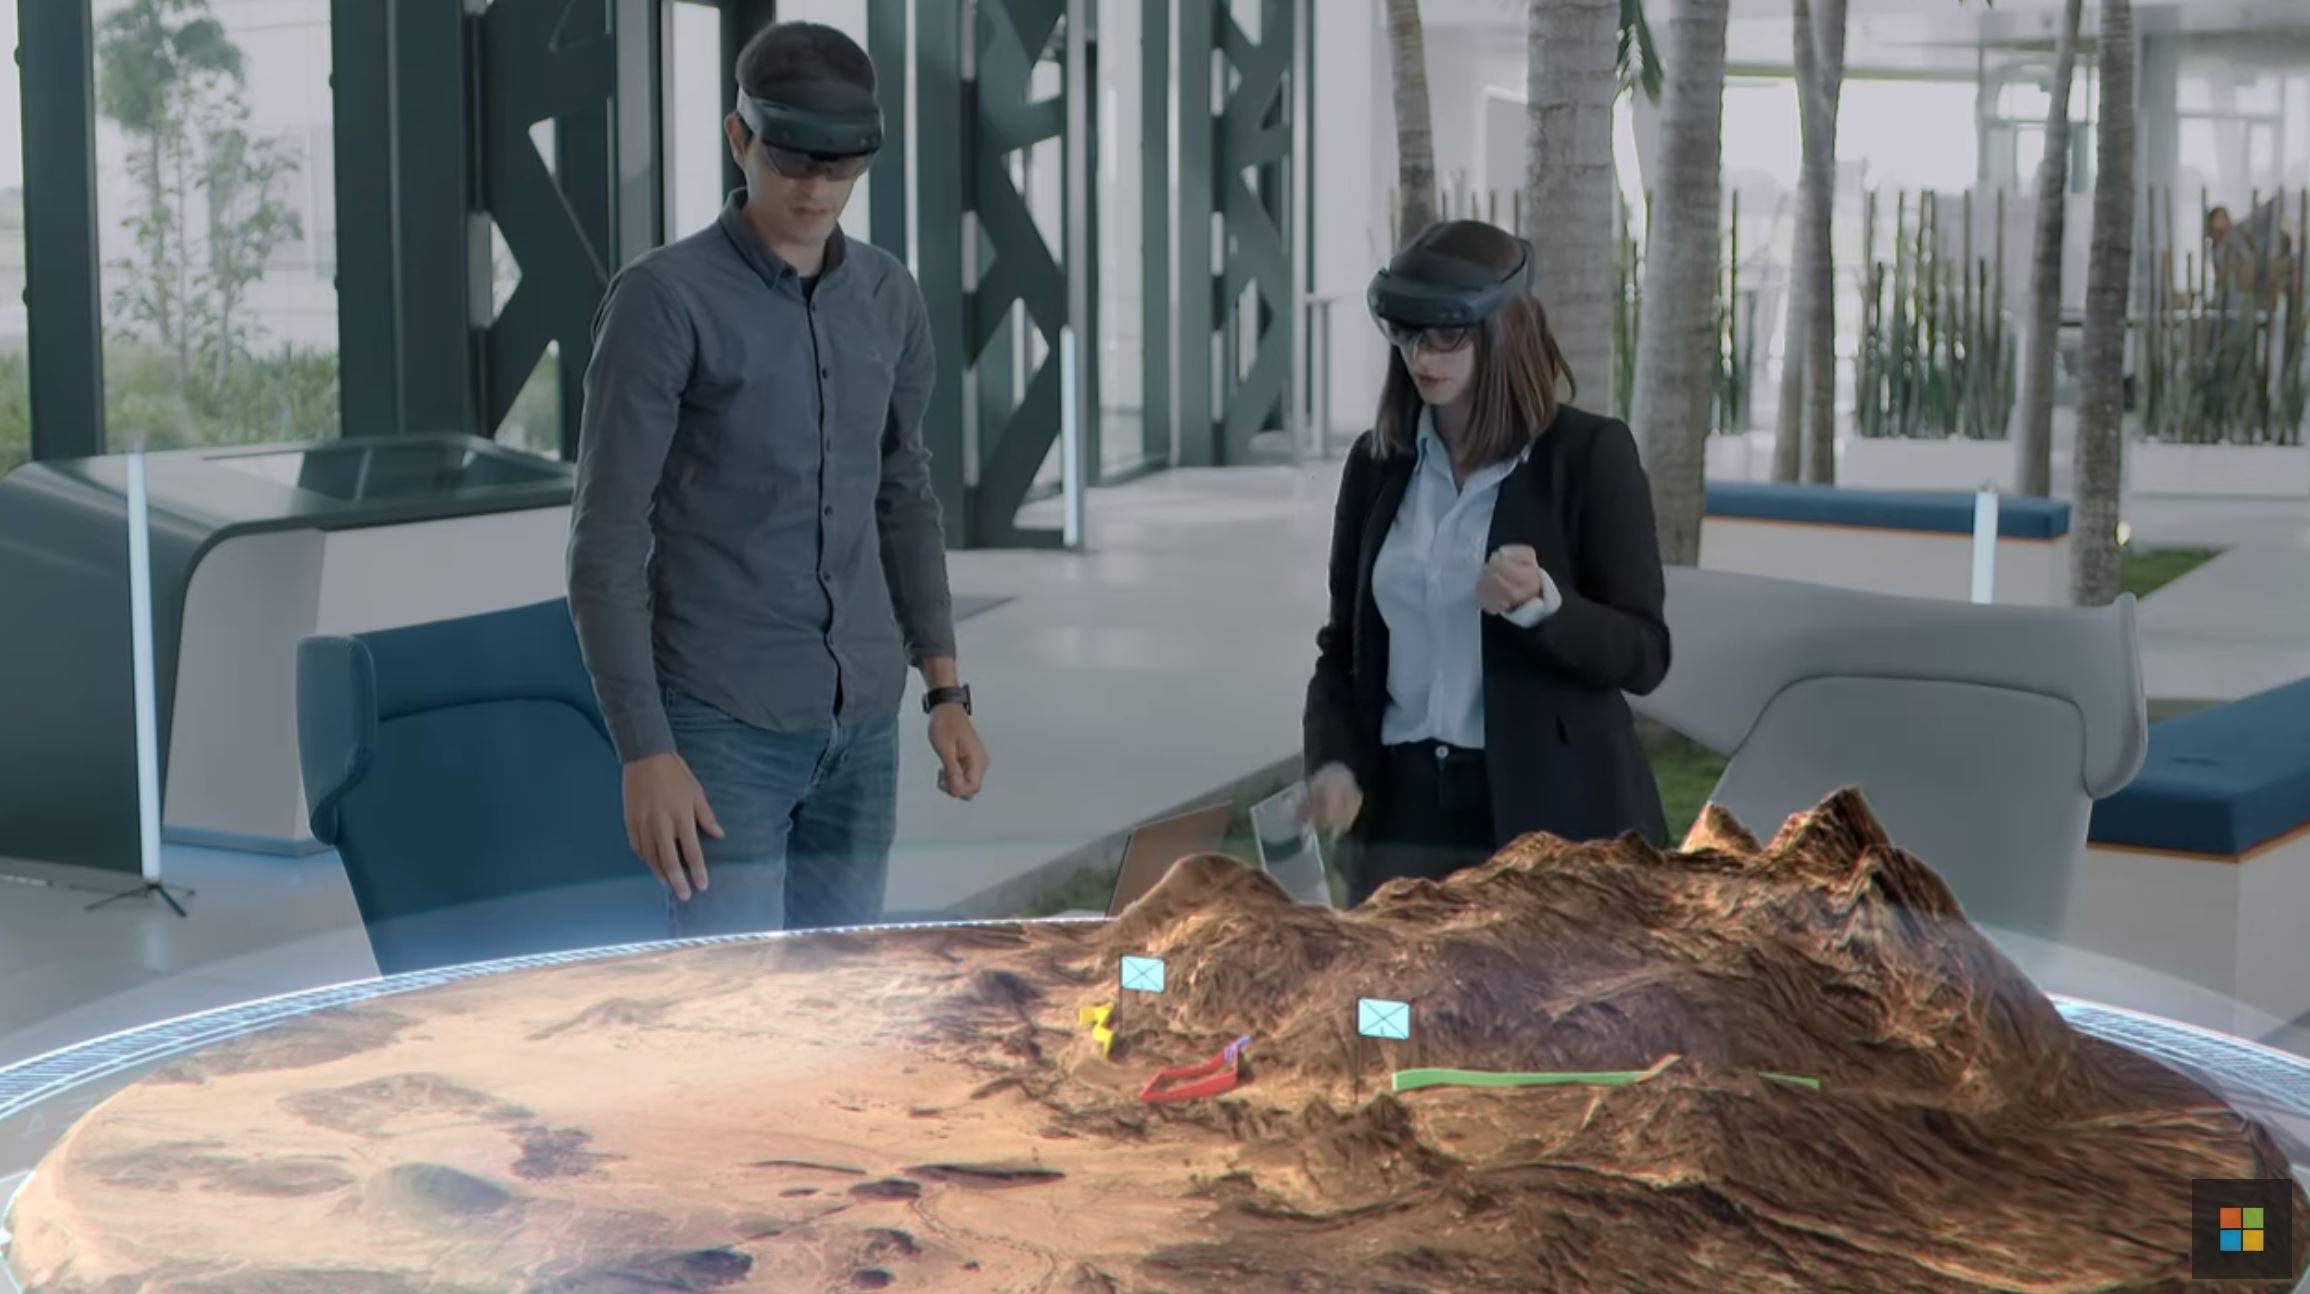 Airbus uses Microsoft HoloLens 2 to improve production of